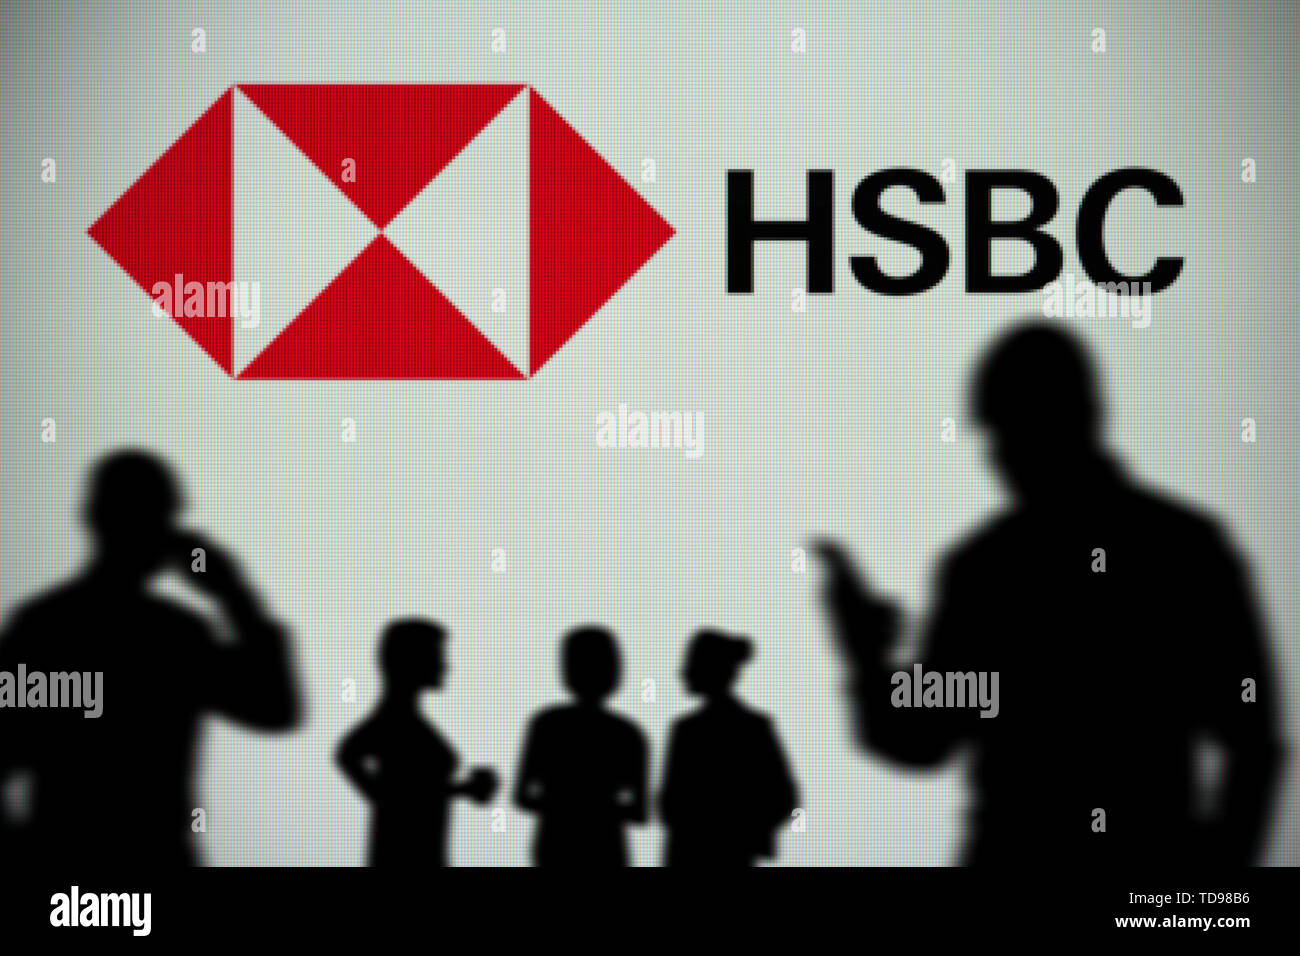 Hsbc Screen Stock Photos & Hsbc Screen Stock Images - Alamy